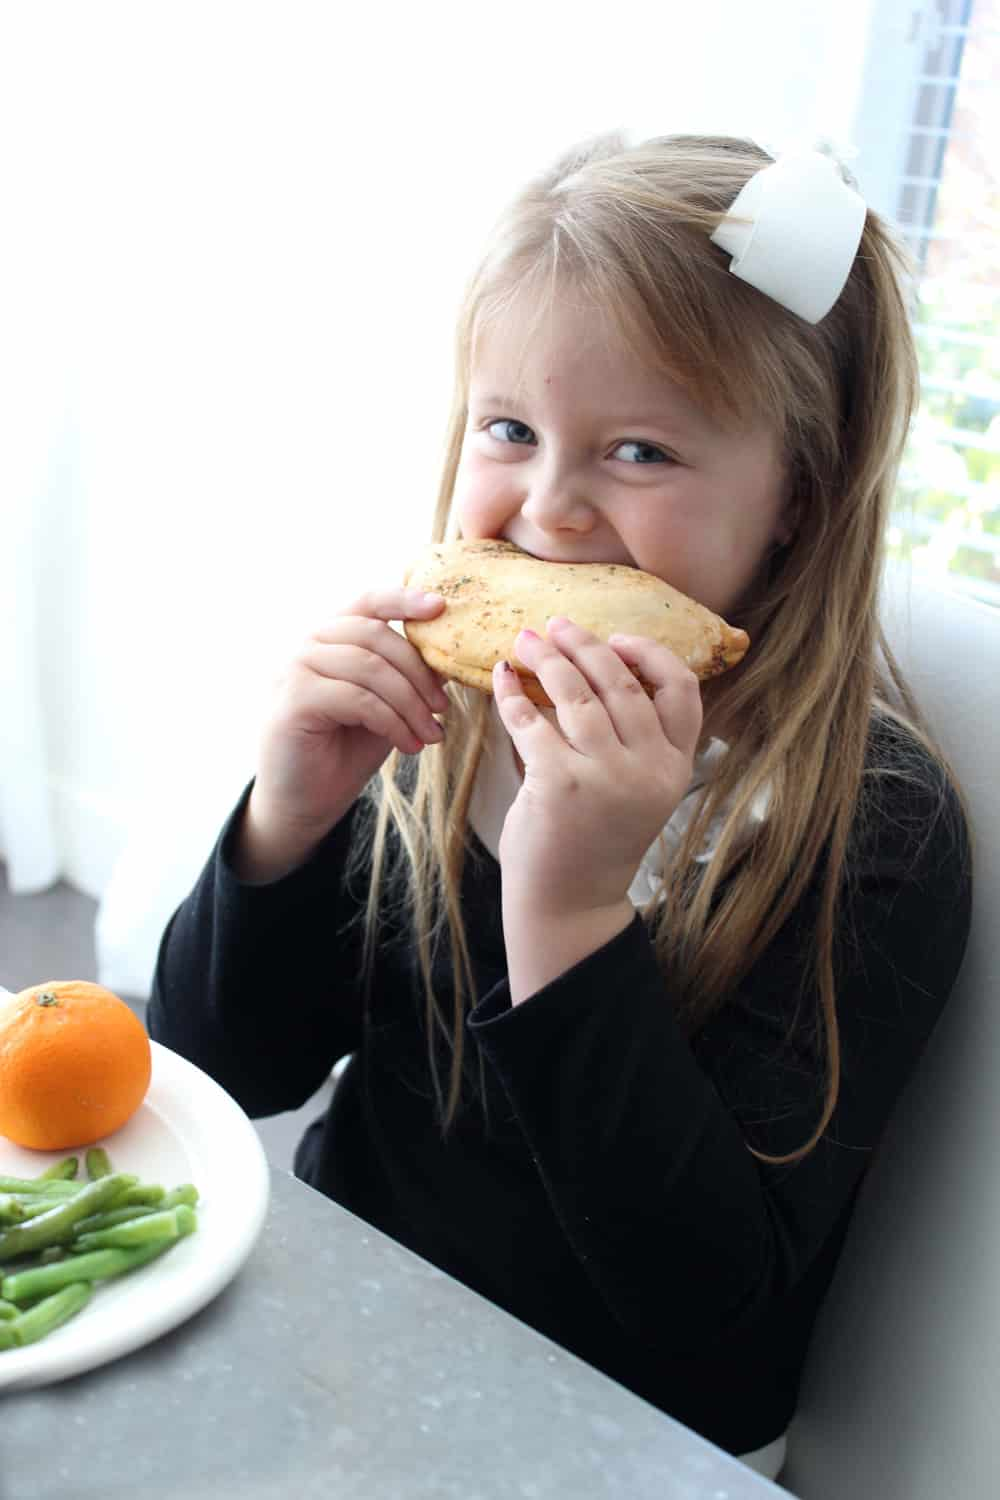 Little girl eating a calzone.